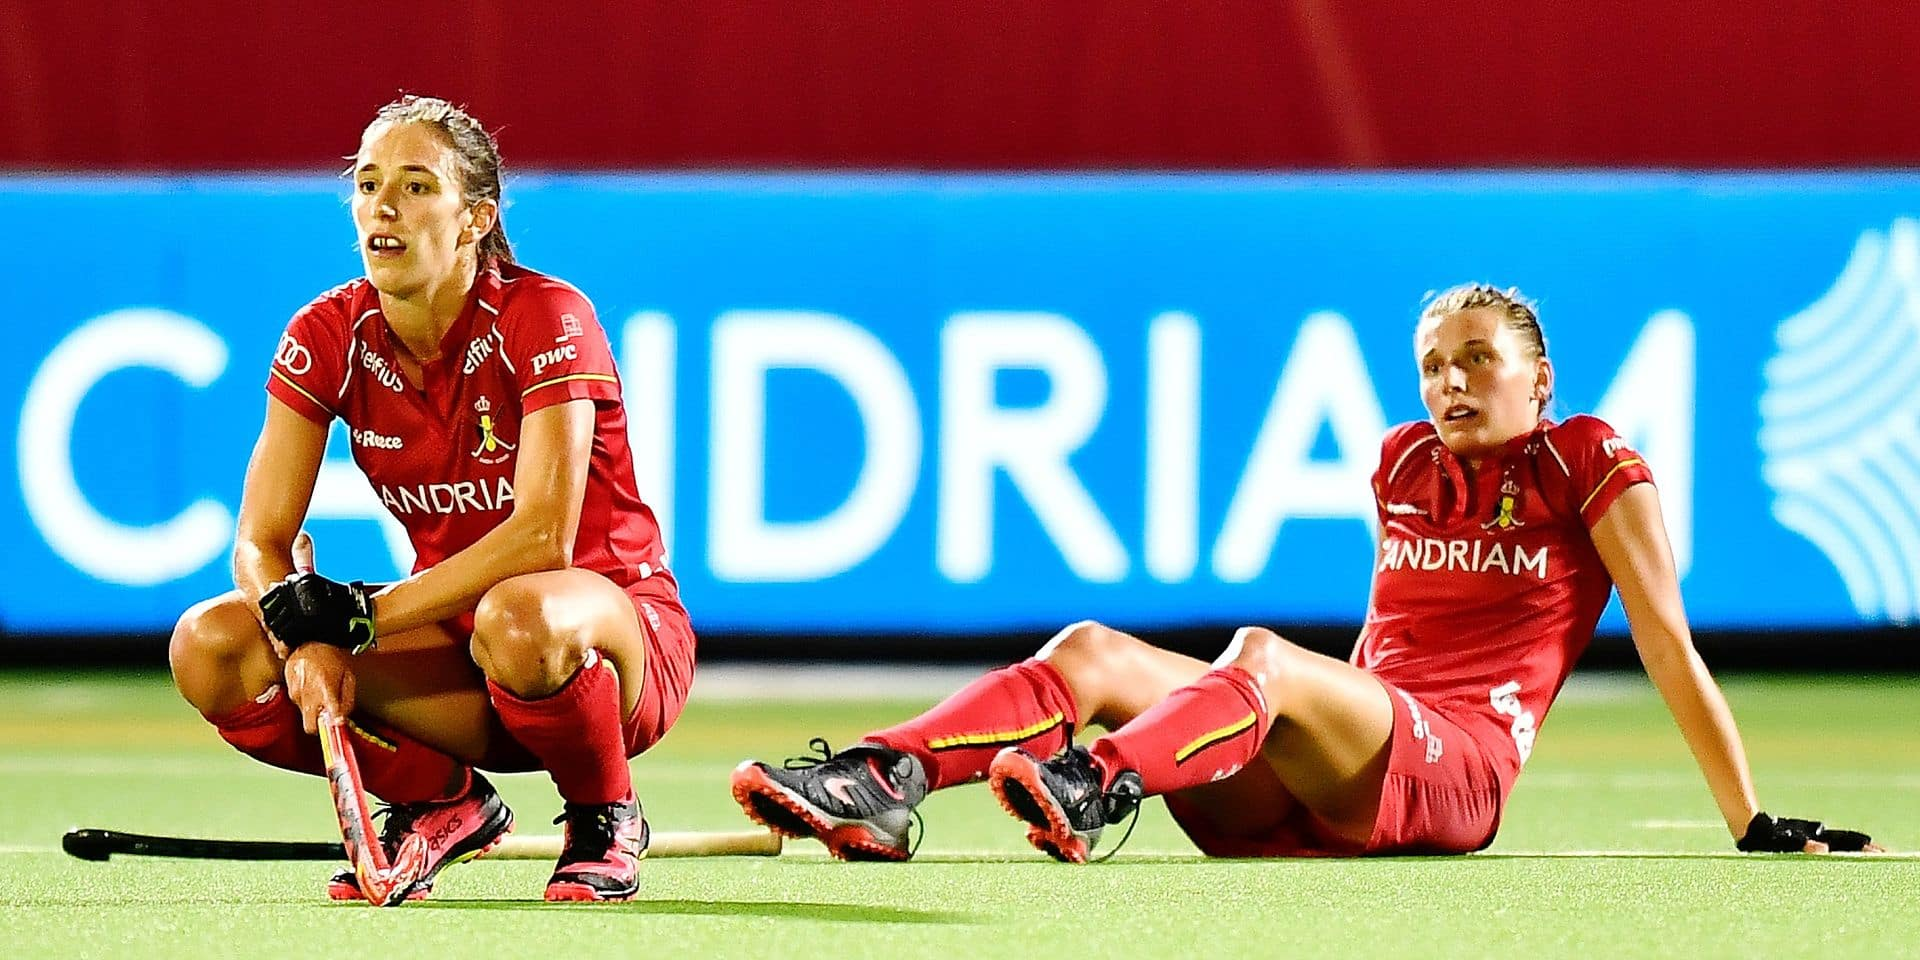 Belgium's Judith Vandermeiren looks dejected after a hockey game between Belgian women's national team The Red Panthers and Spain, game 3/3 in Pool A of the 'EuroHockey' European Championships, Wednesday 21 August 2019 in Wilrijk, Antwerp. BELGA PHOTO DIRK WAEM